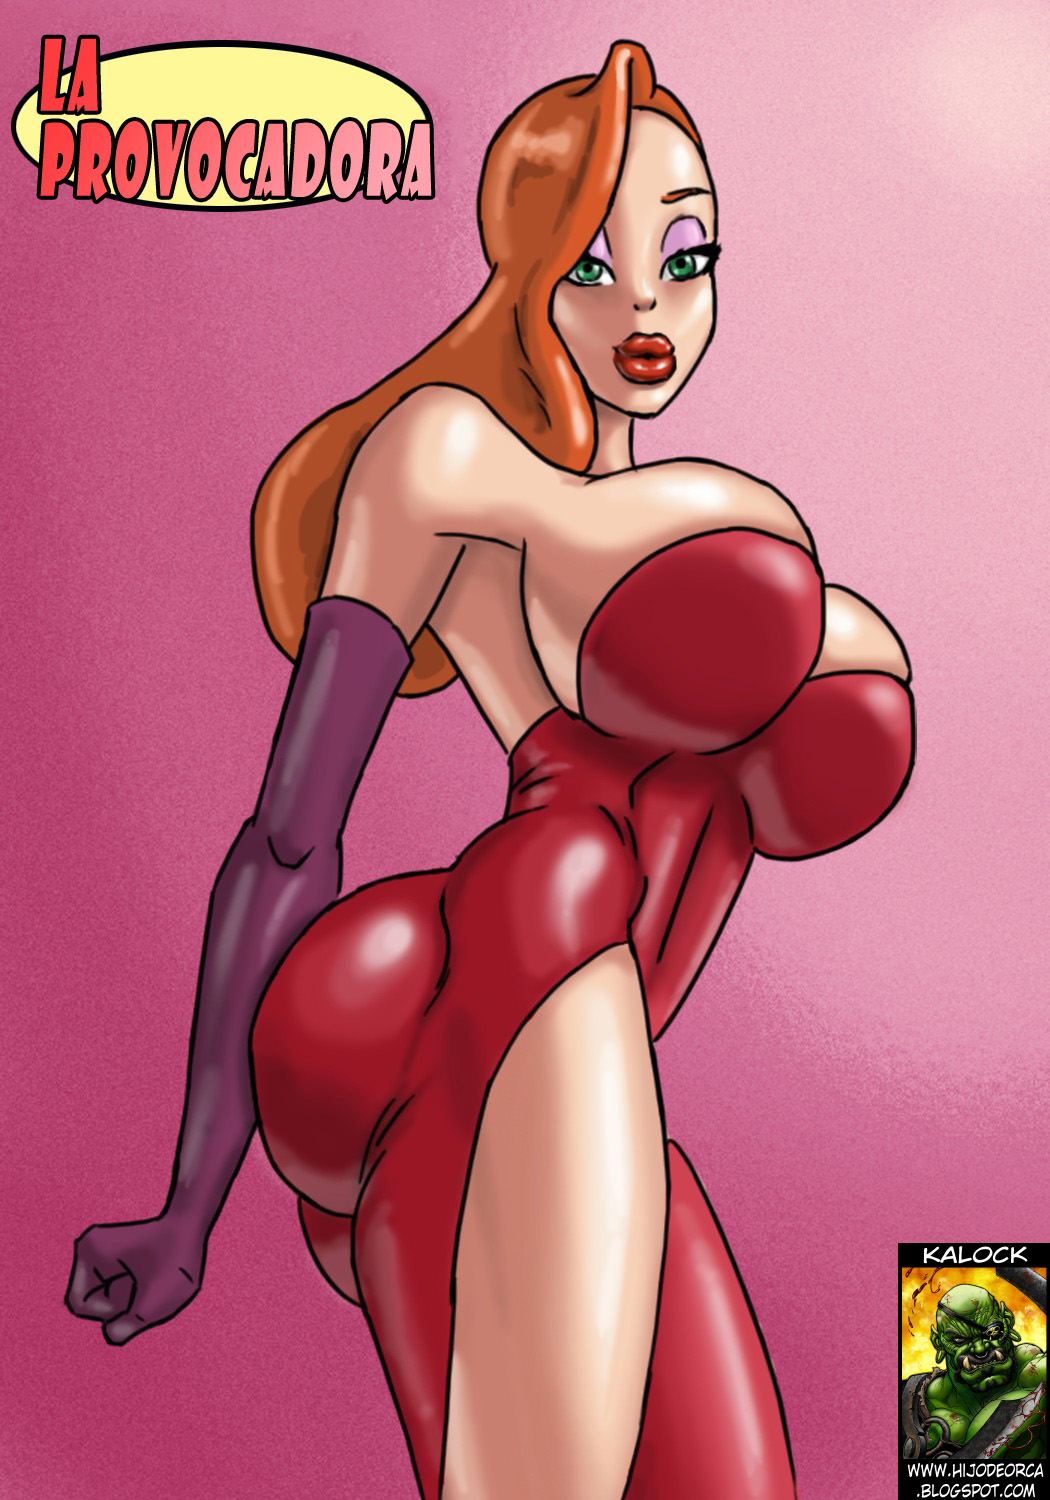 SureFap xxx porno Who Censored Roger Rabbit - [Thetrigger123412] - Beauty and the Bouncer - La Provocadora